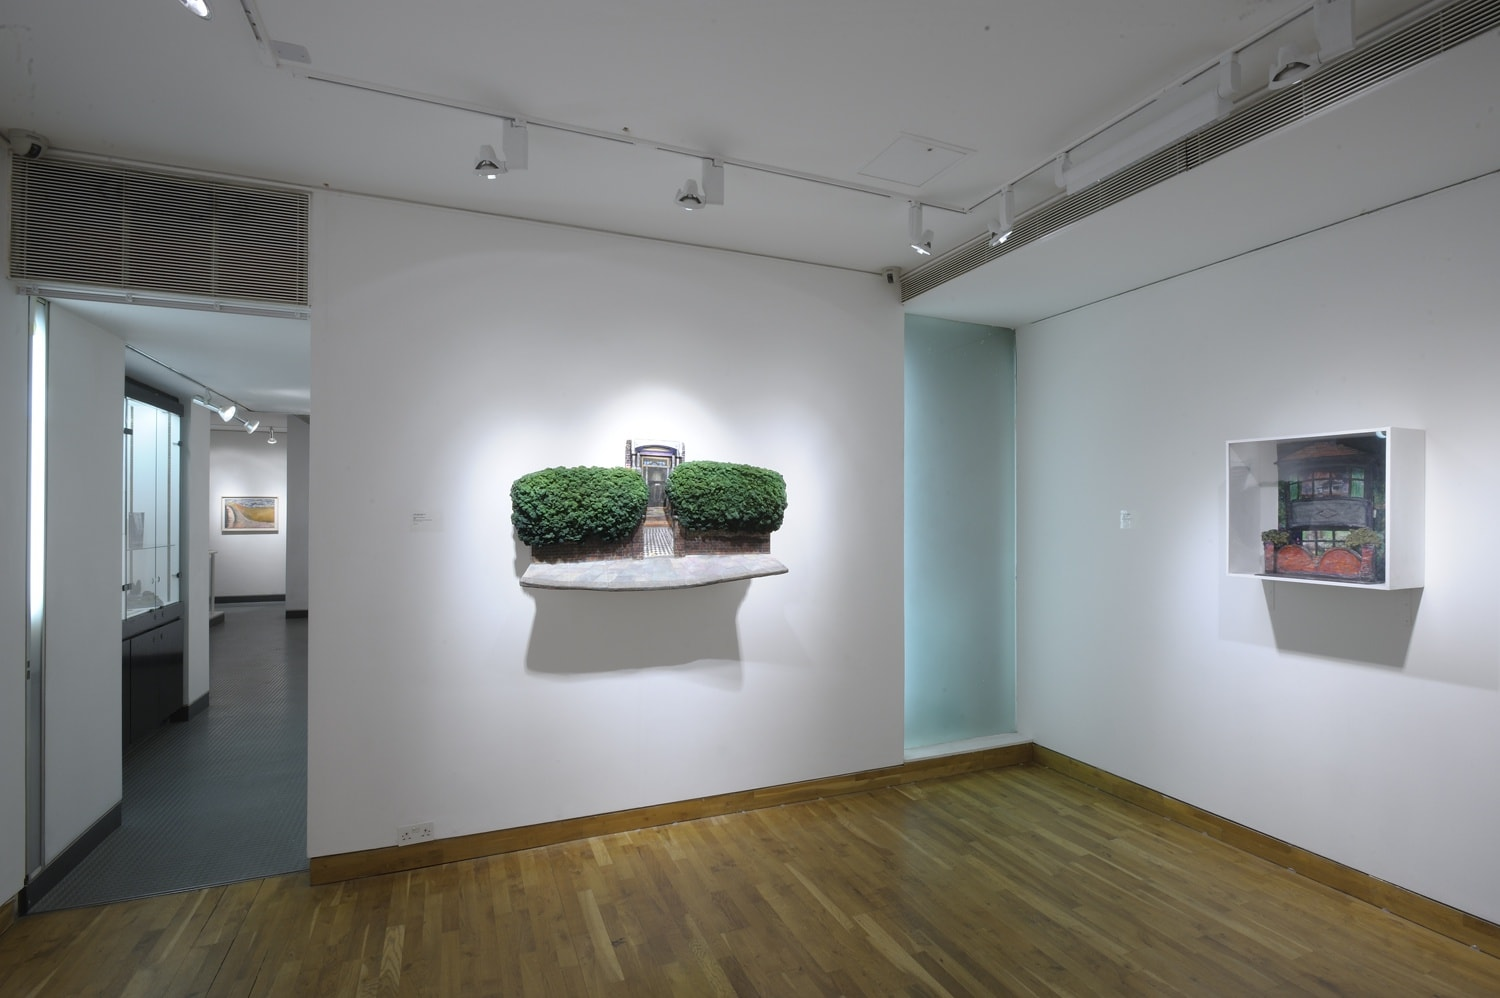 "<span class=""link fancybox-details-link""><a href=""/exhibitions/65/works/image_standalone136/"">View Detail Page</a></span><p>IVOR ABRAHAMS RA 